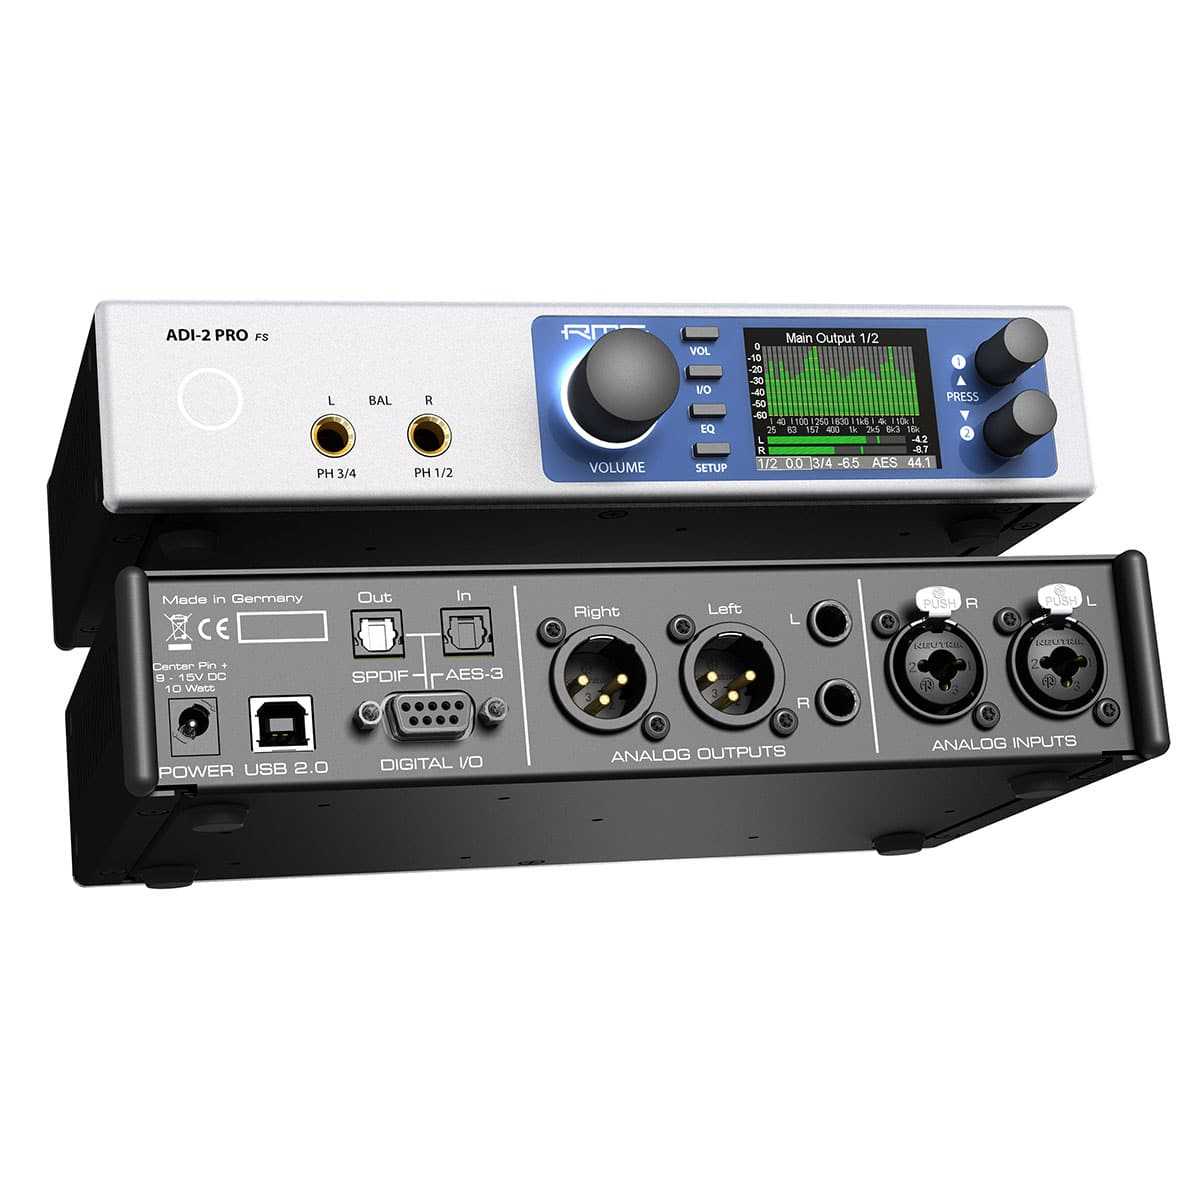 RME ADI 2 PRO FS 04 Convertitori Audio, Pro Audio, Audio Digitale, Schede Audio per PC e MAC